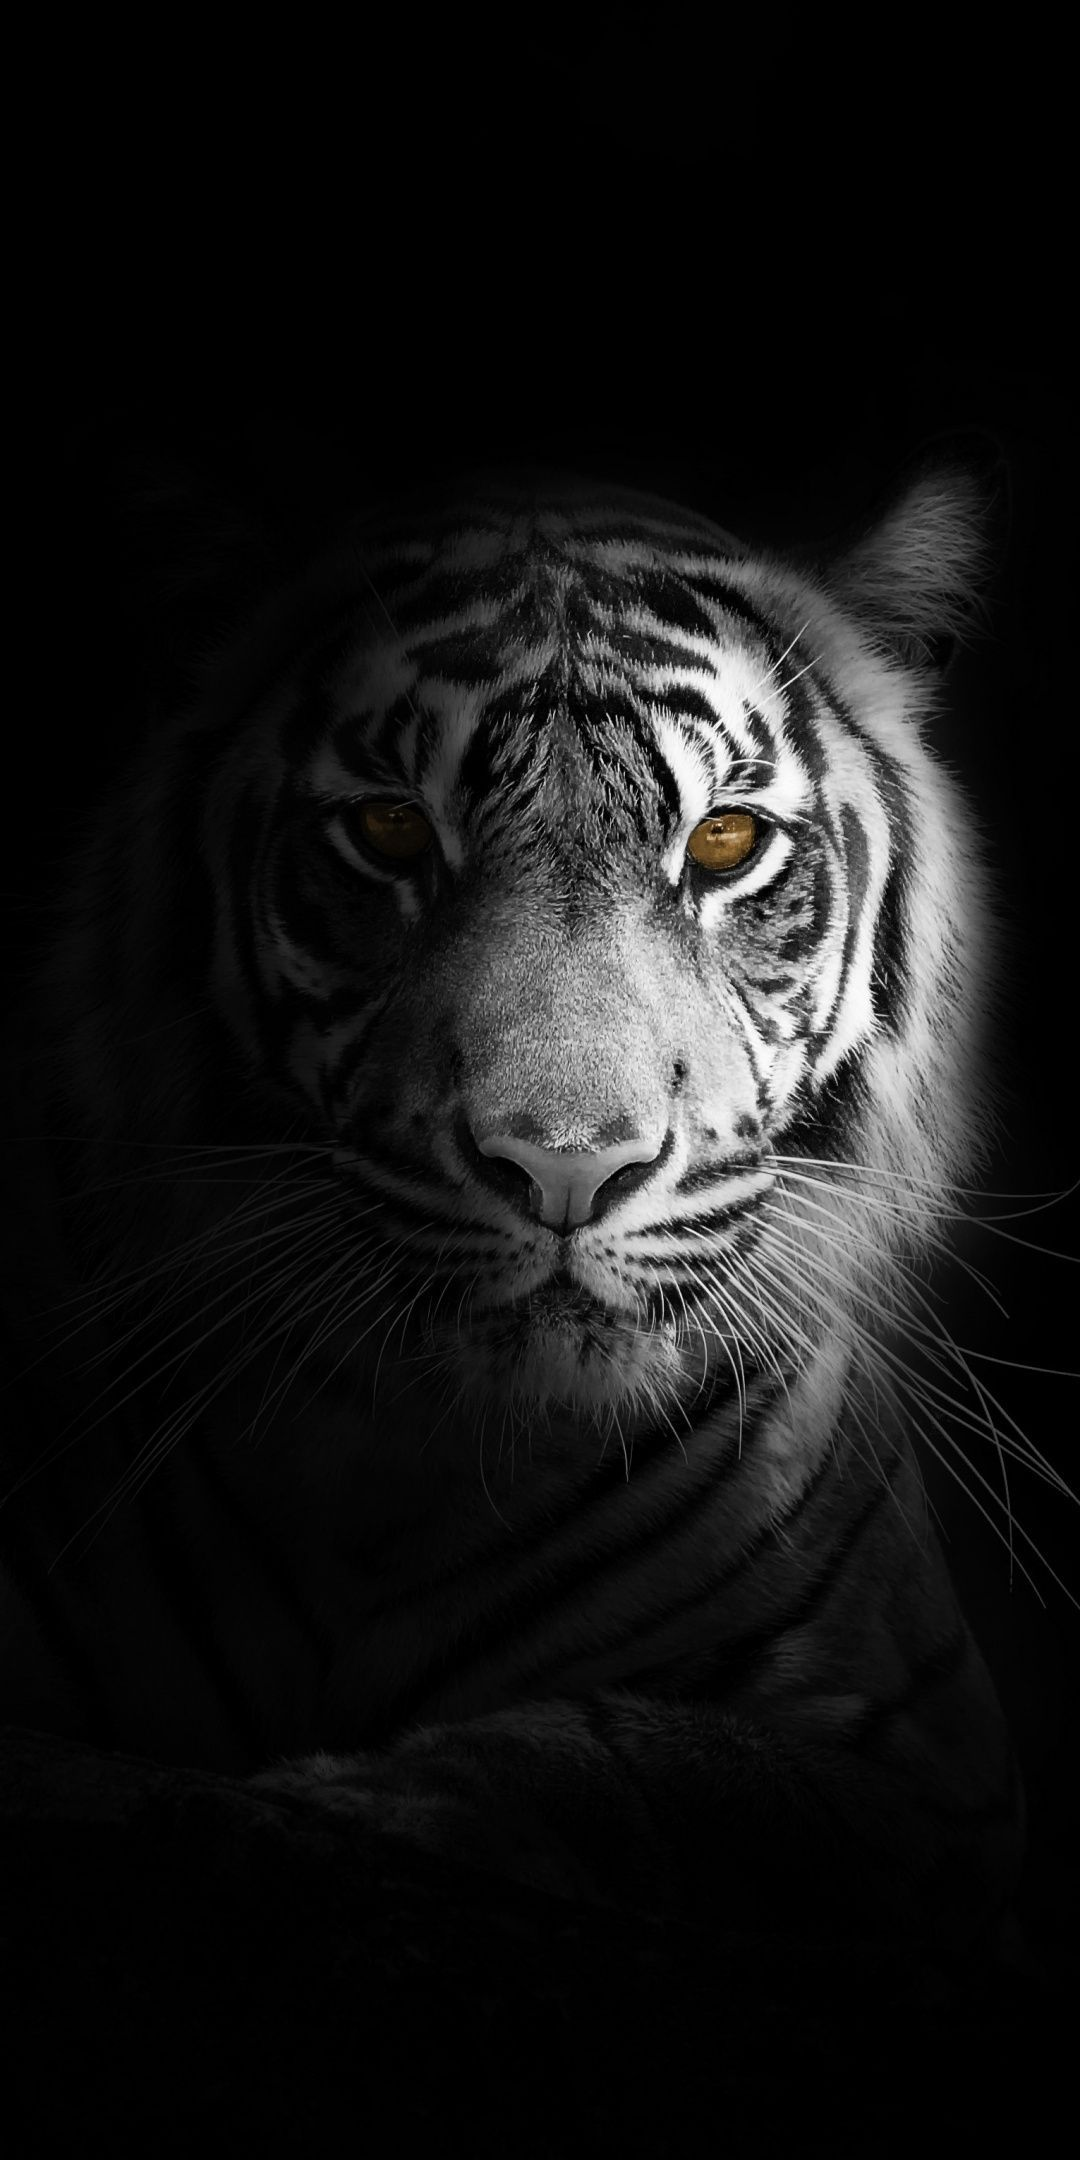 Trends For Roaring Tiger Wallpaper Black And White Pictures In 2020 Tiger Photography Tiger Wallpaper Tiger Wallpaper Iphone